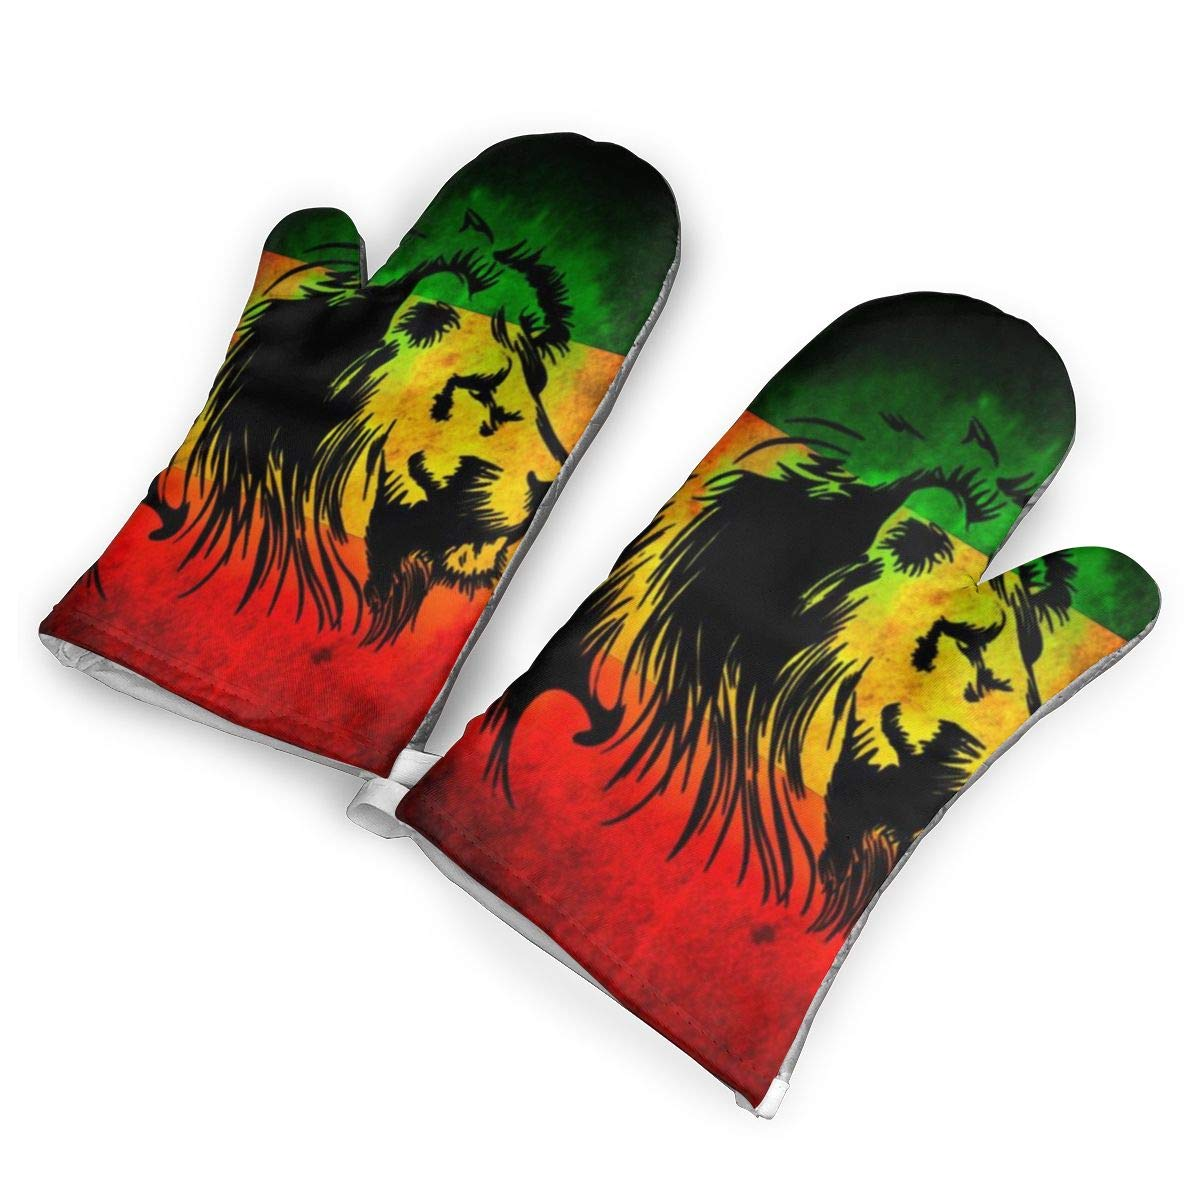 not Leones Verde Amarillo Y Rojo Oven Mitts with Polyester Fabric Printed Pattern,1 Pair of Heat Resistant Oven Gloves for Cooking,Baking,Grilling,Barbecue Potholders